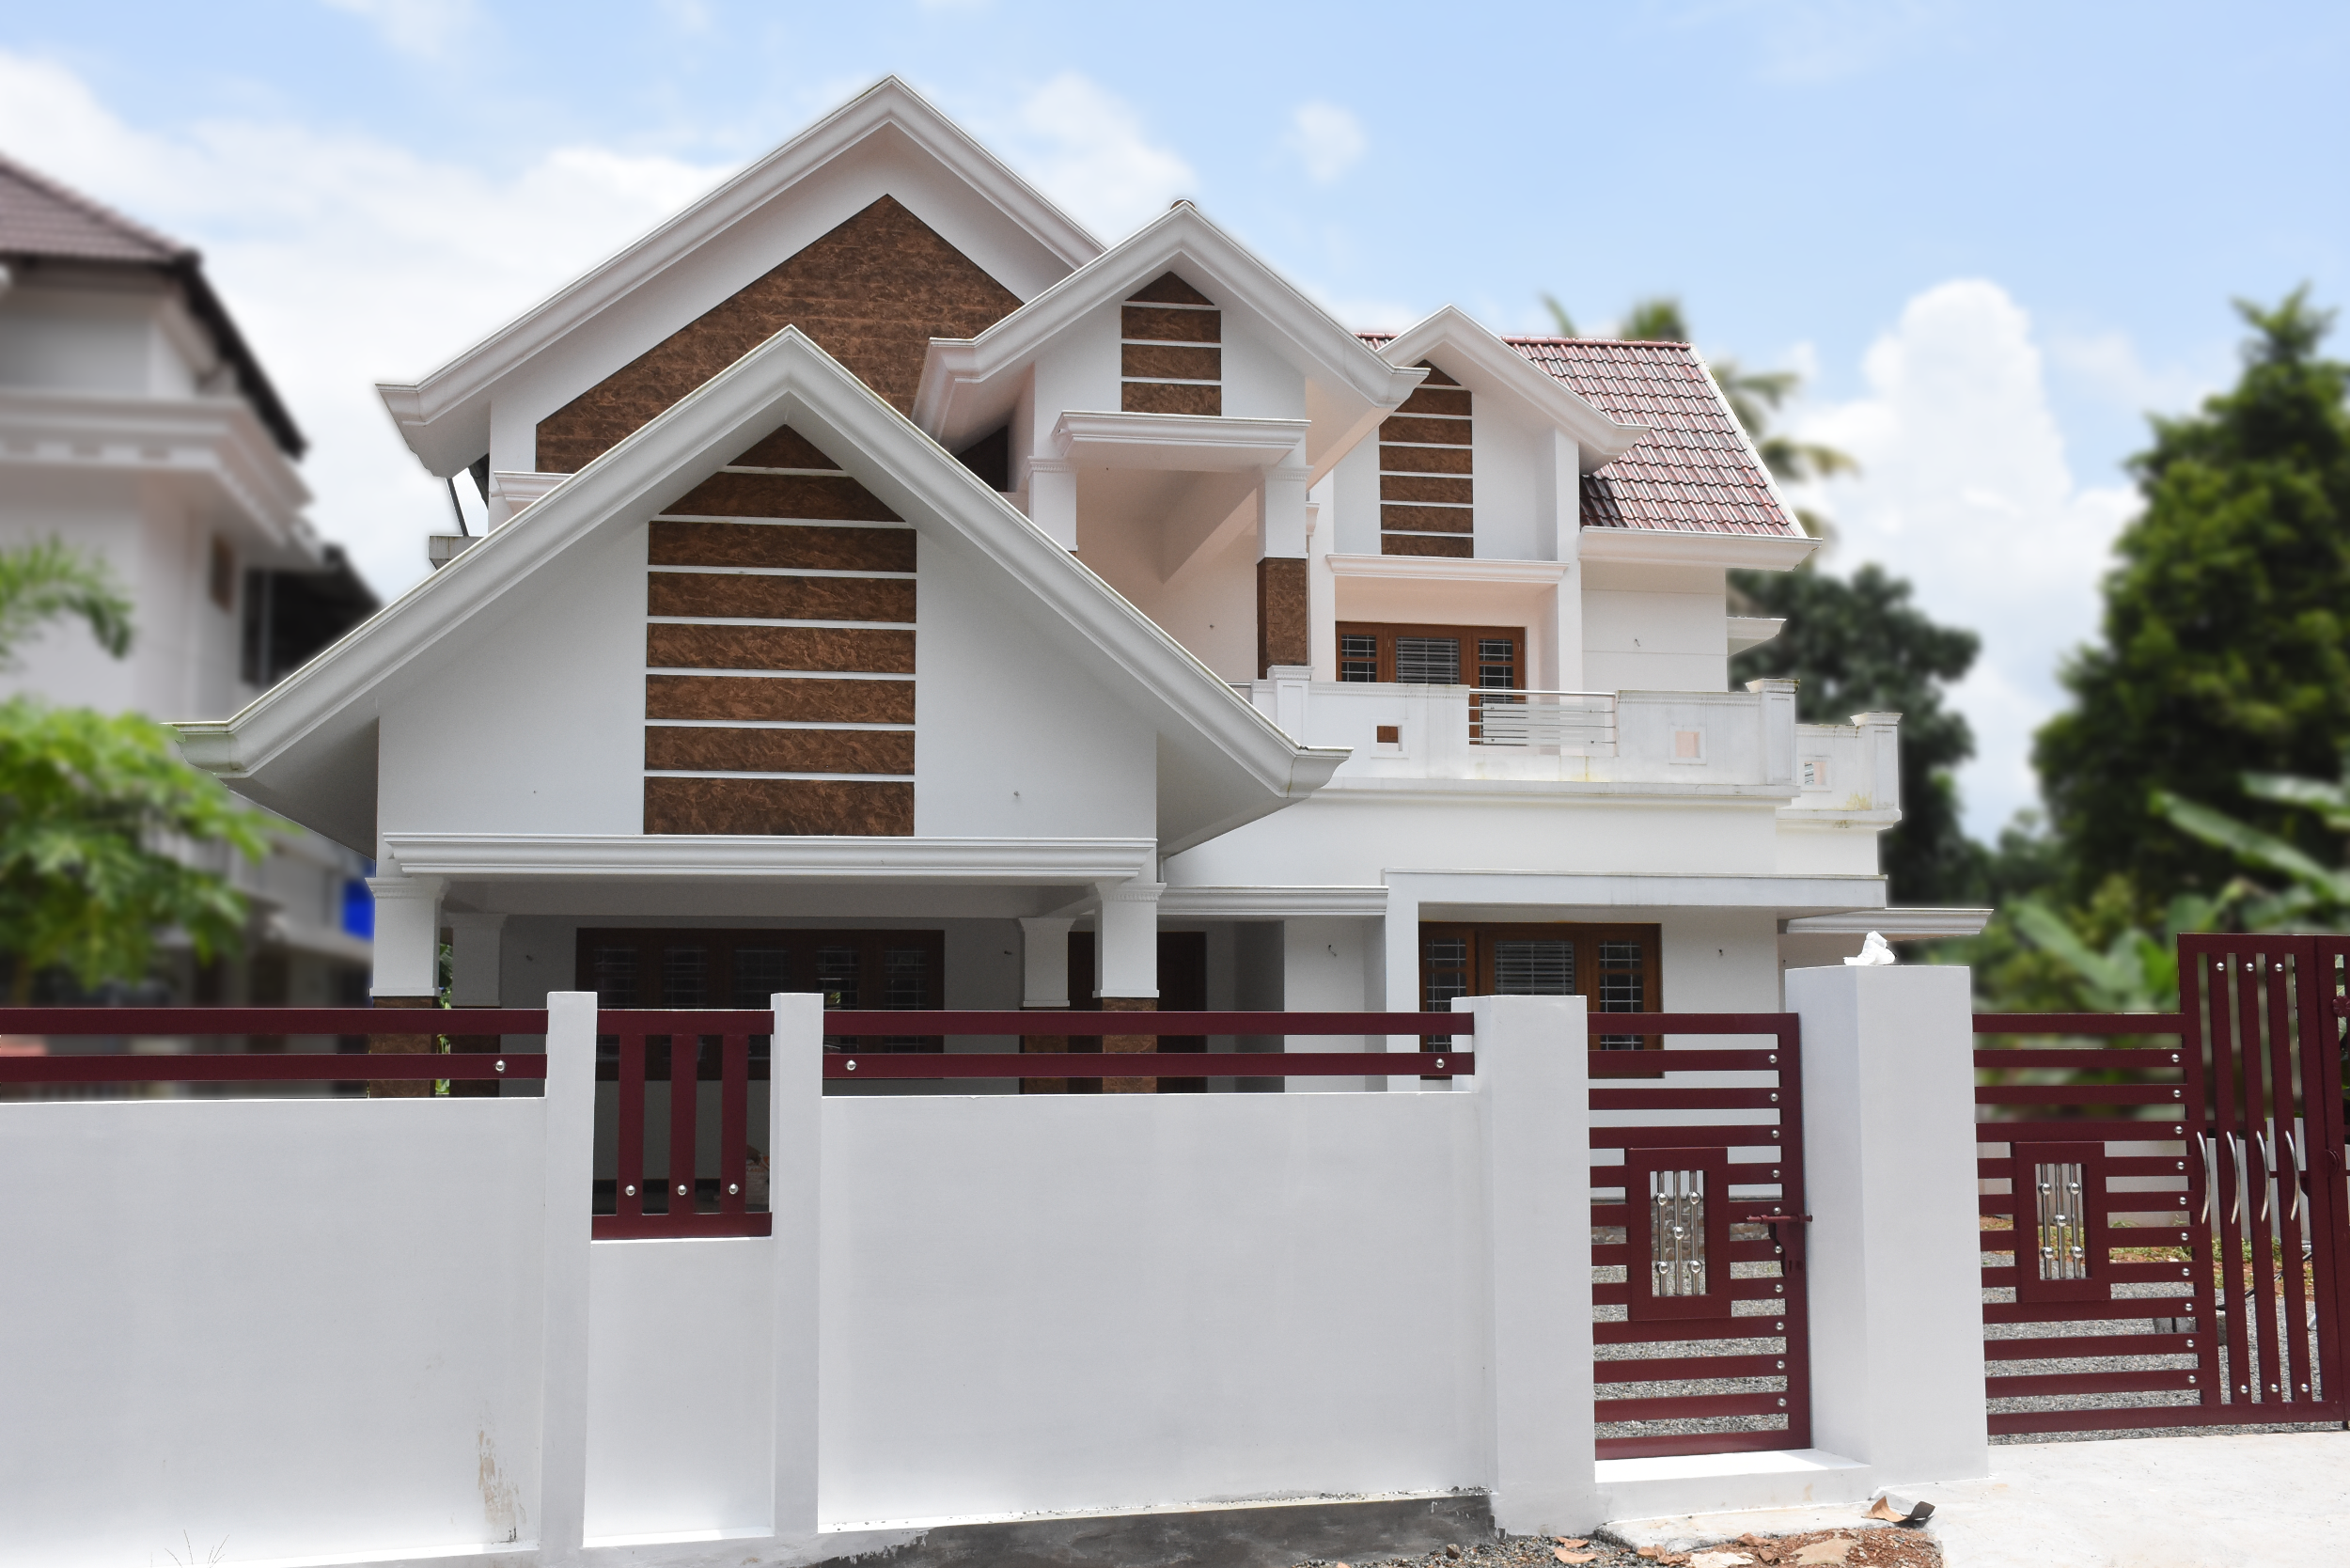 Angamaly, 11 Cents Plot And 3150 Sq Ft, Kerala Style House For Sale In  Angamaly, Near Main Road